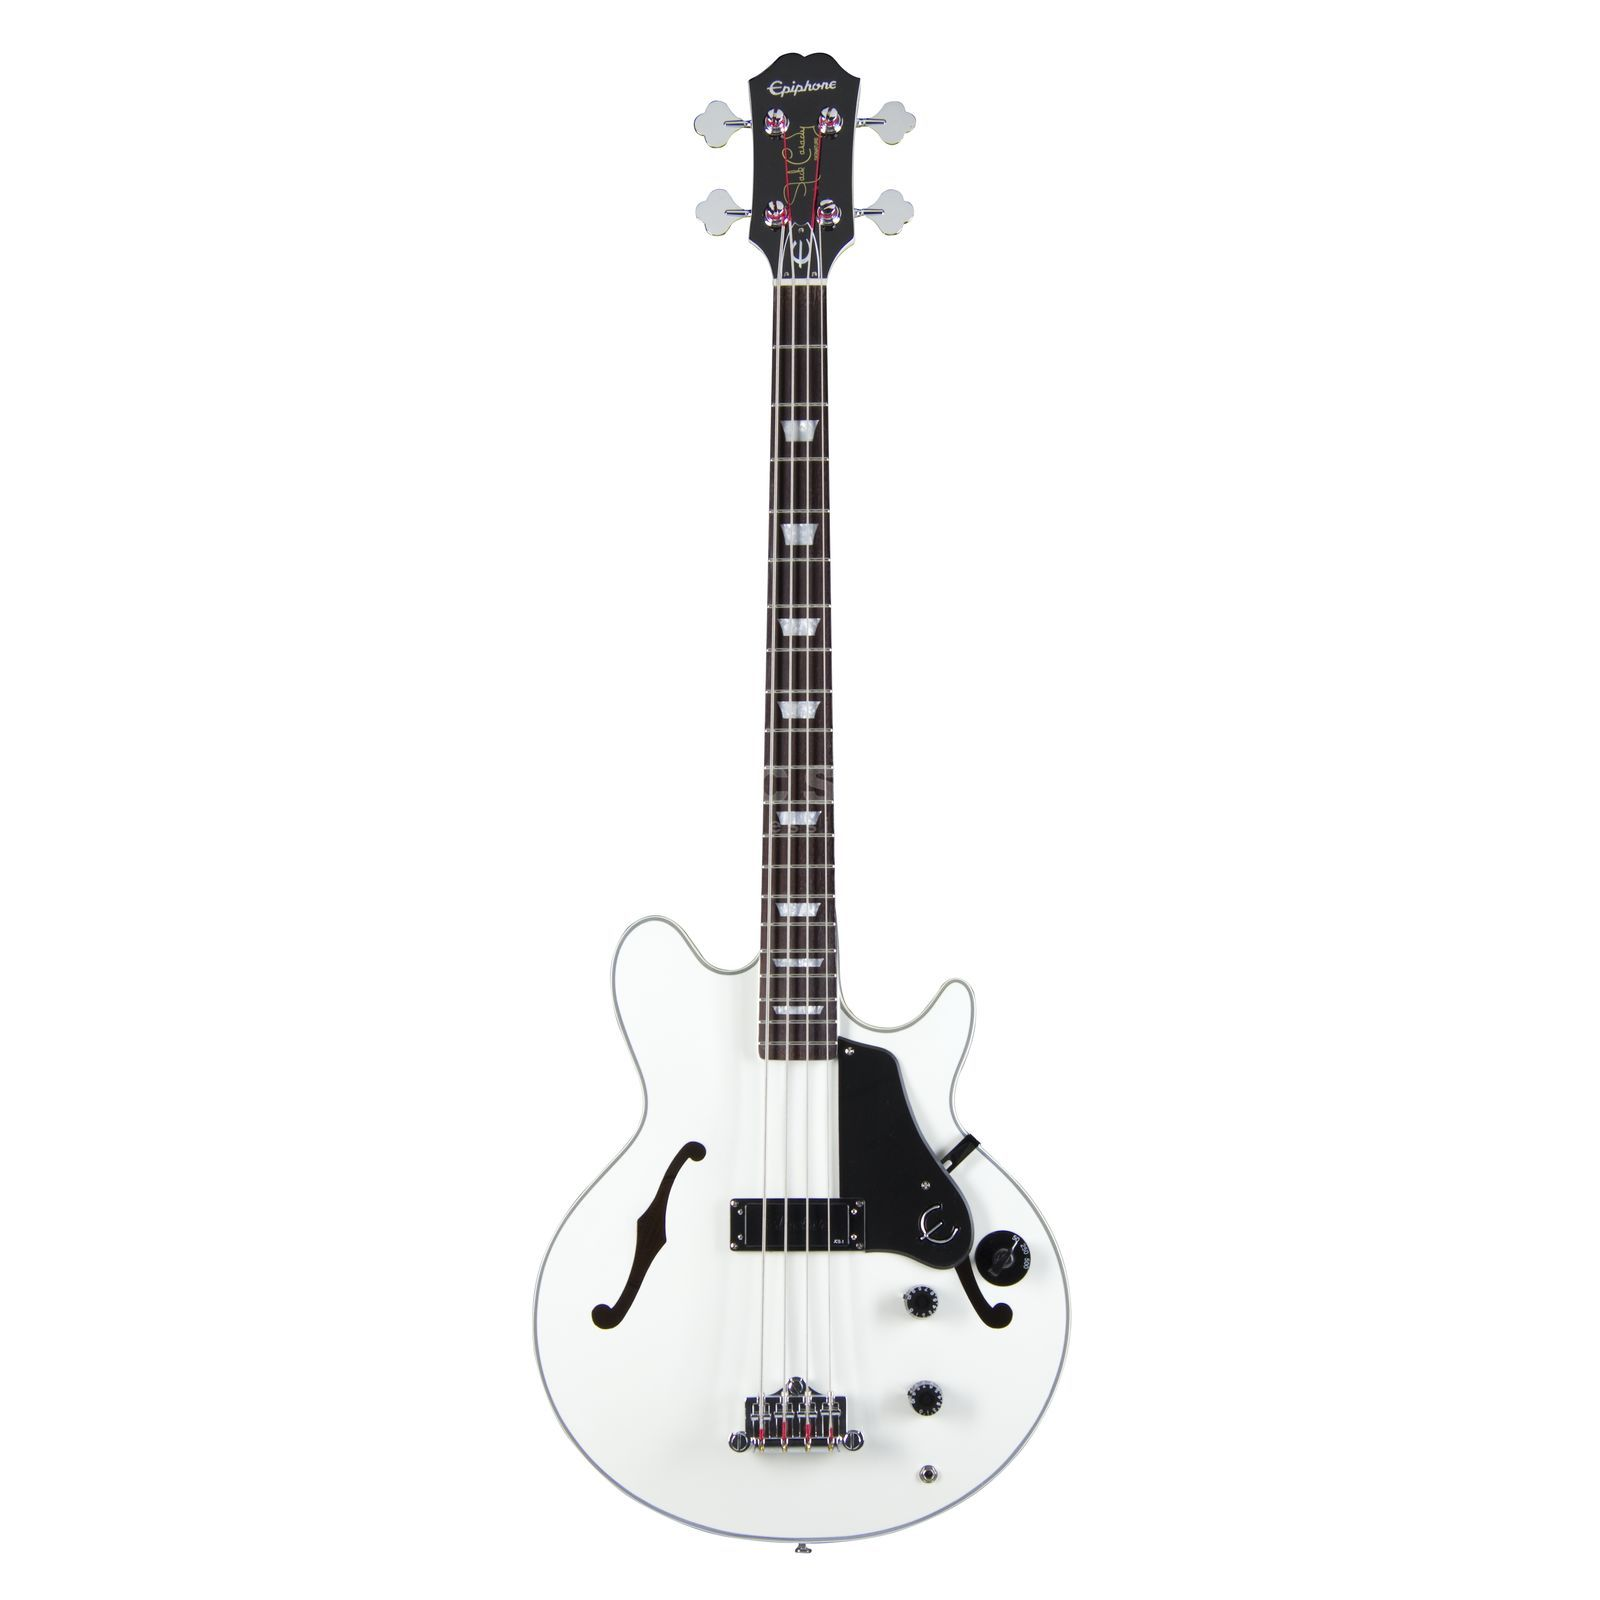 Epiphone Limited Edition Jack Casady Signature Bass Alpine White Productafbeelding